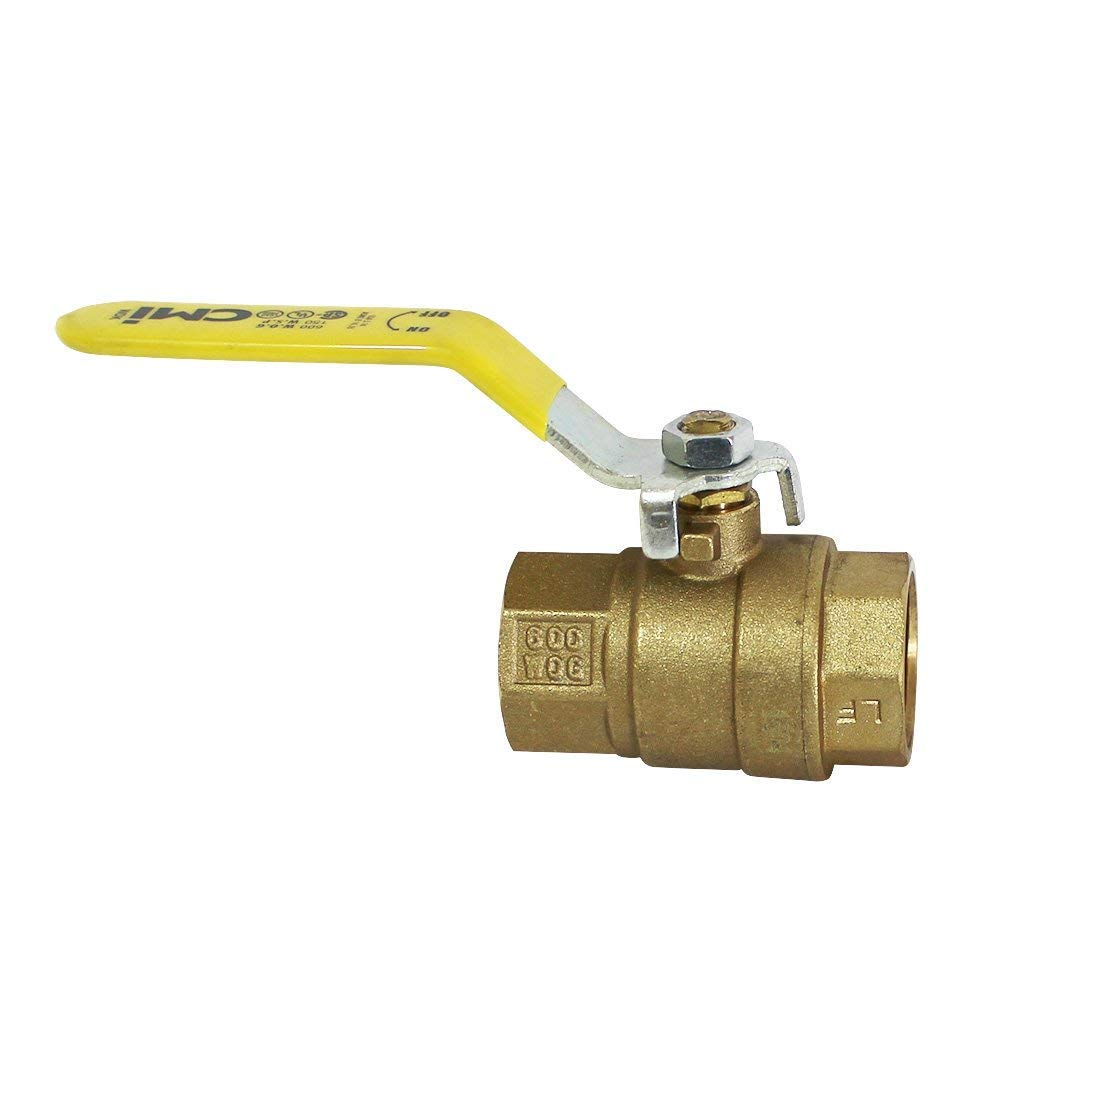 3'' Brass Ball Valve Threaded - IPS Full Port Irrigation Water Valves - Mechanical Lead Free Lever Handle - 3-Inch Female Thread Inline Steam Oil 600 WOG Supplies Hot Cold Pipes CSA Approved 3 Inches